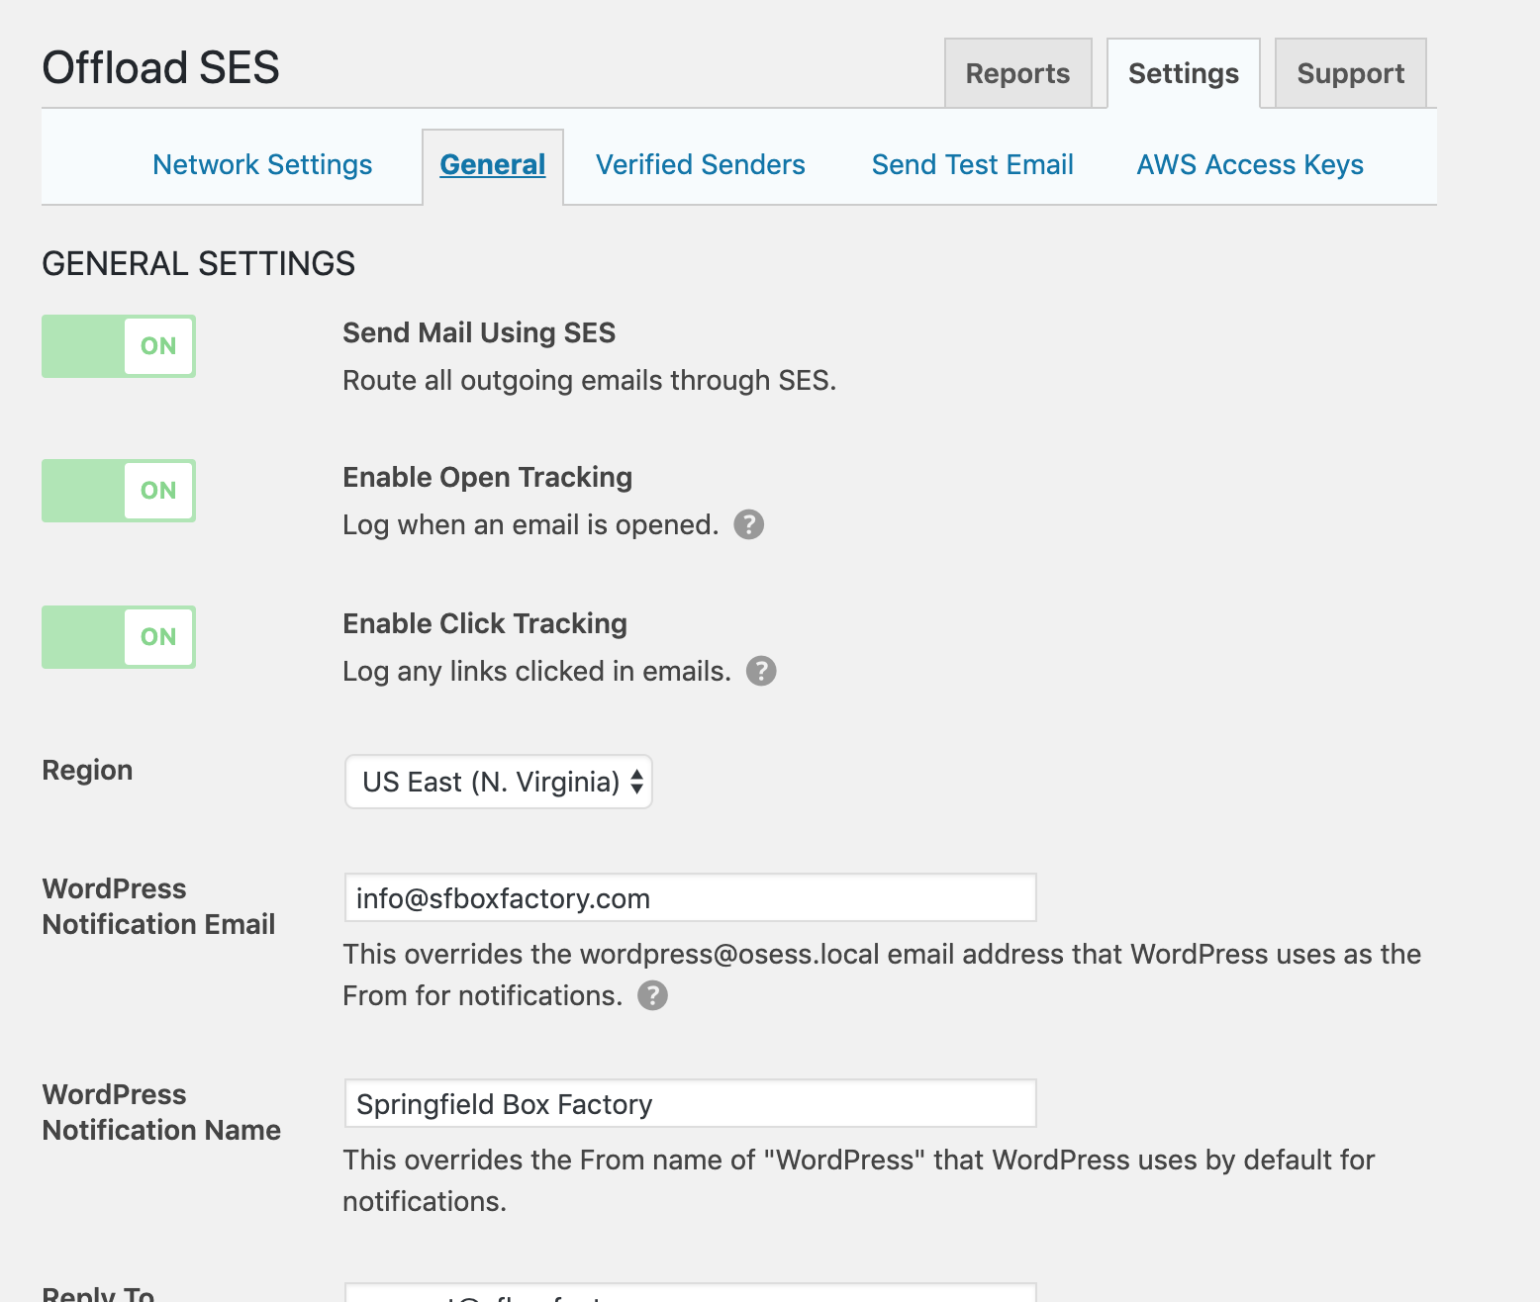 General settings for Multisite Subsite